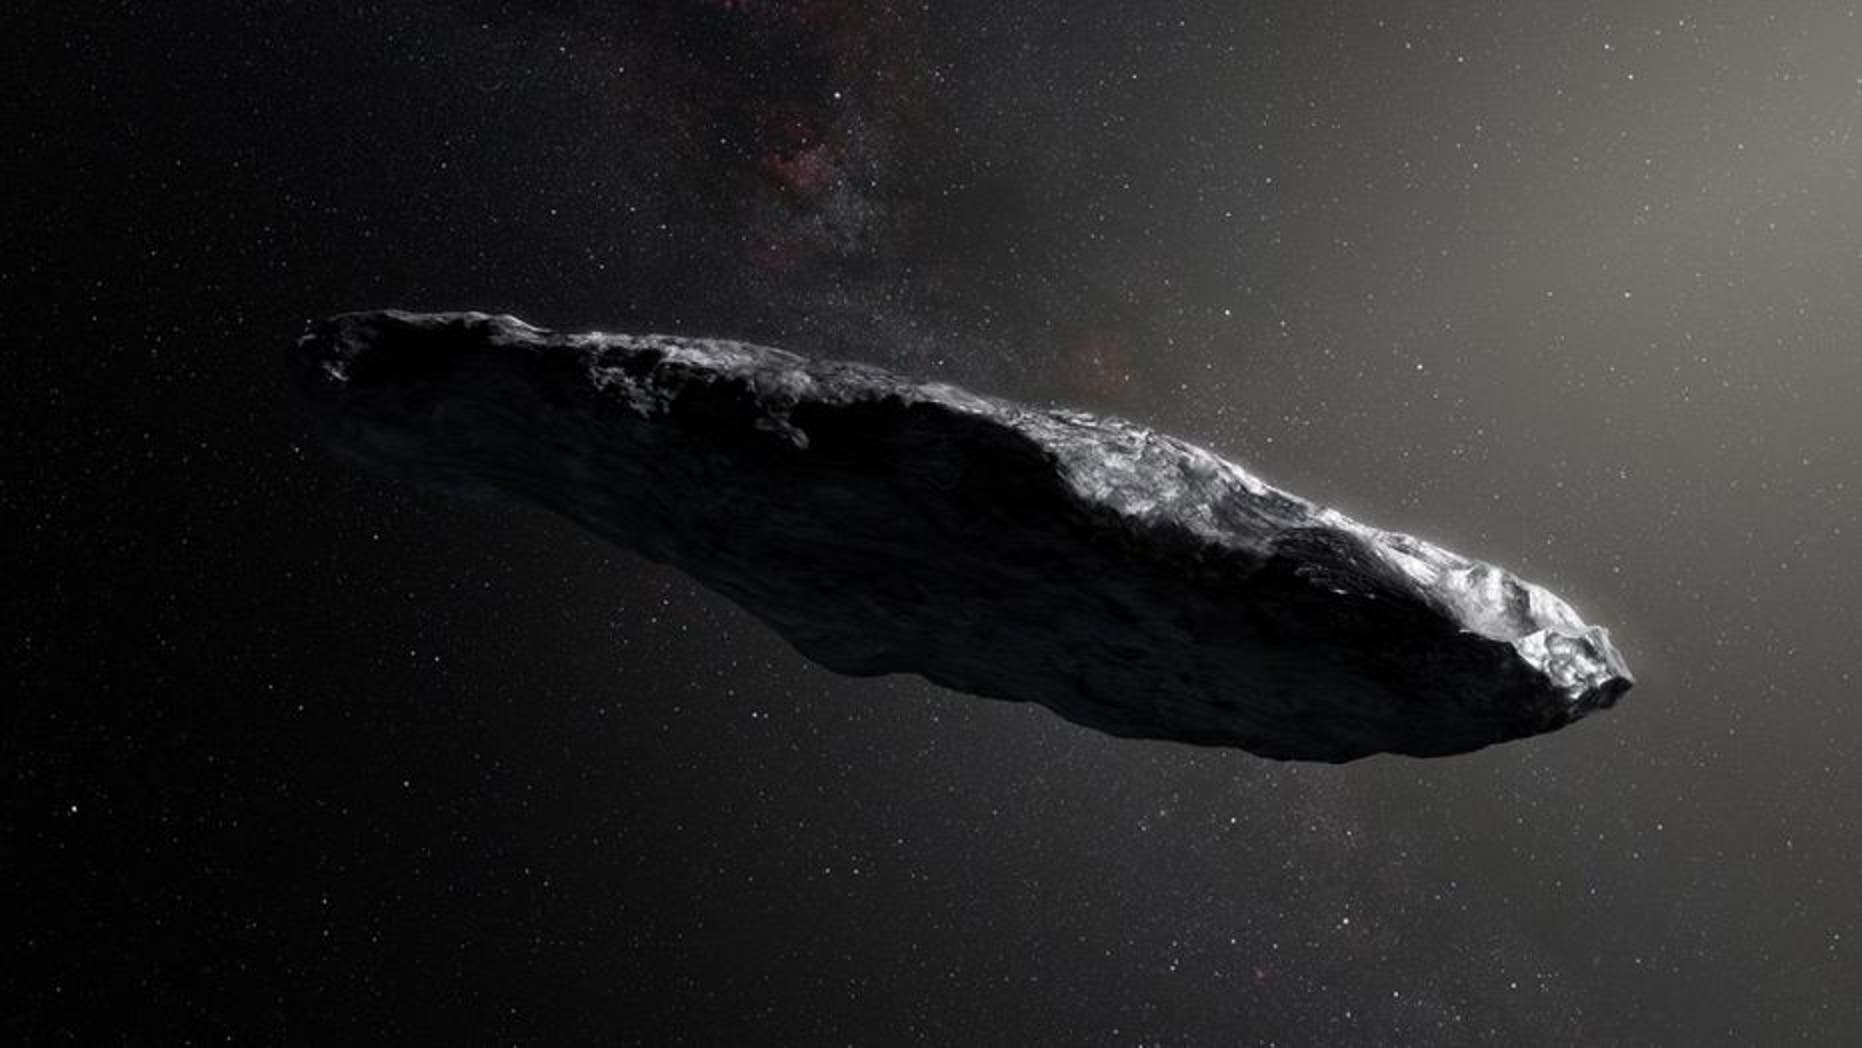 Scientists say mystery space object could be alien spacecraft